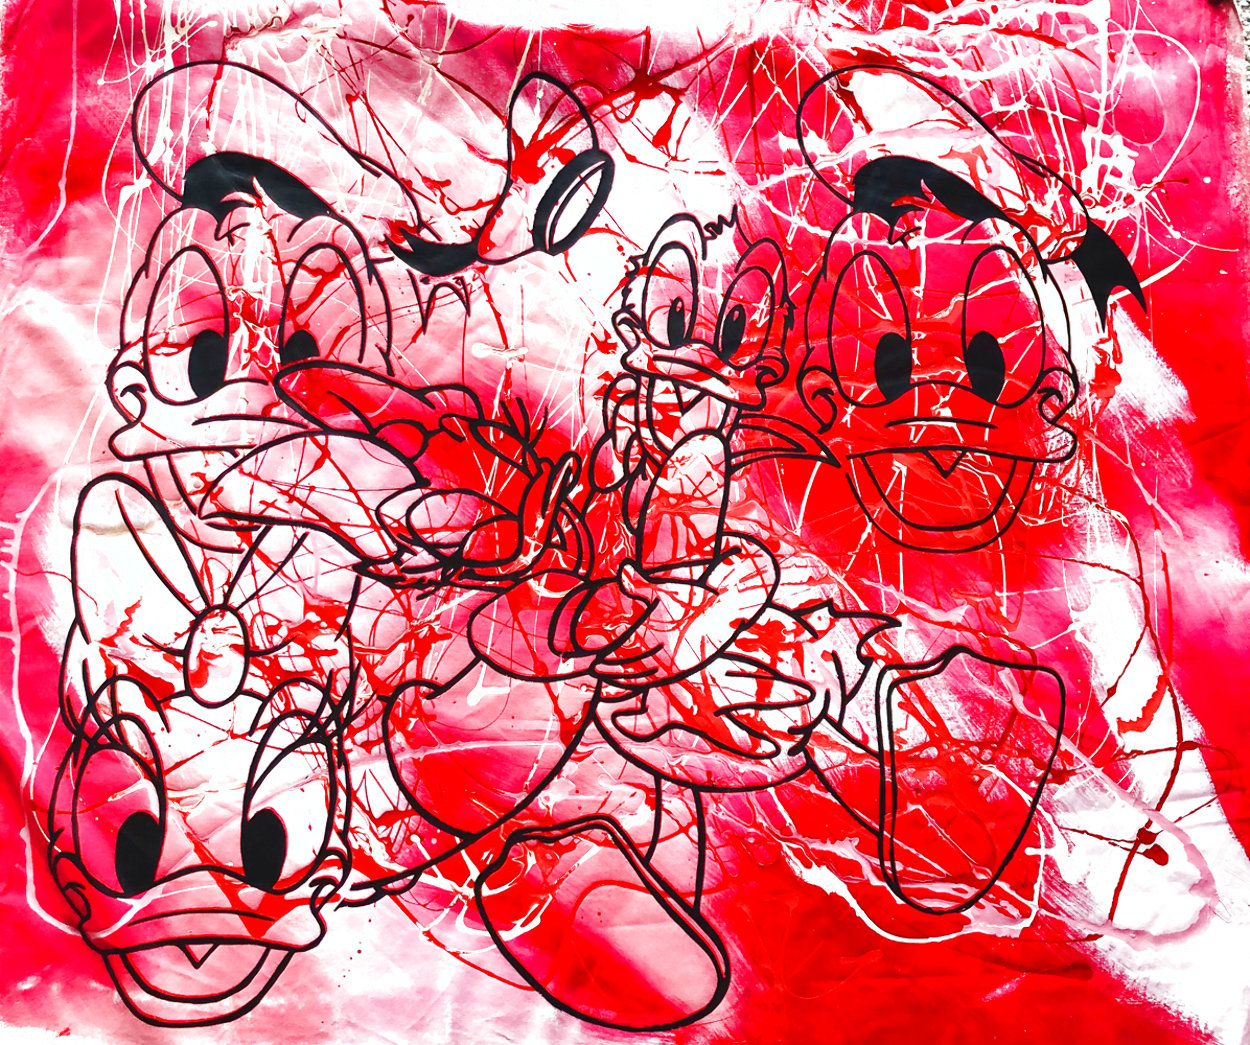 Disney Donald And Daisy Duck Red White Oil Unique  1999 42x50 Original Painting by Steve Kaufman